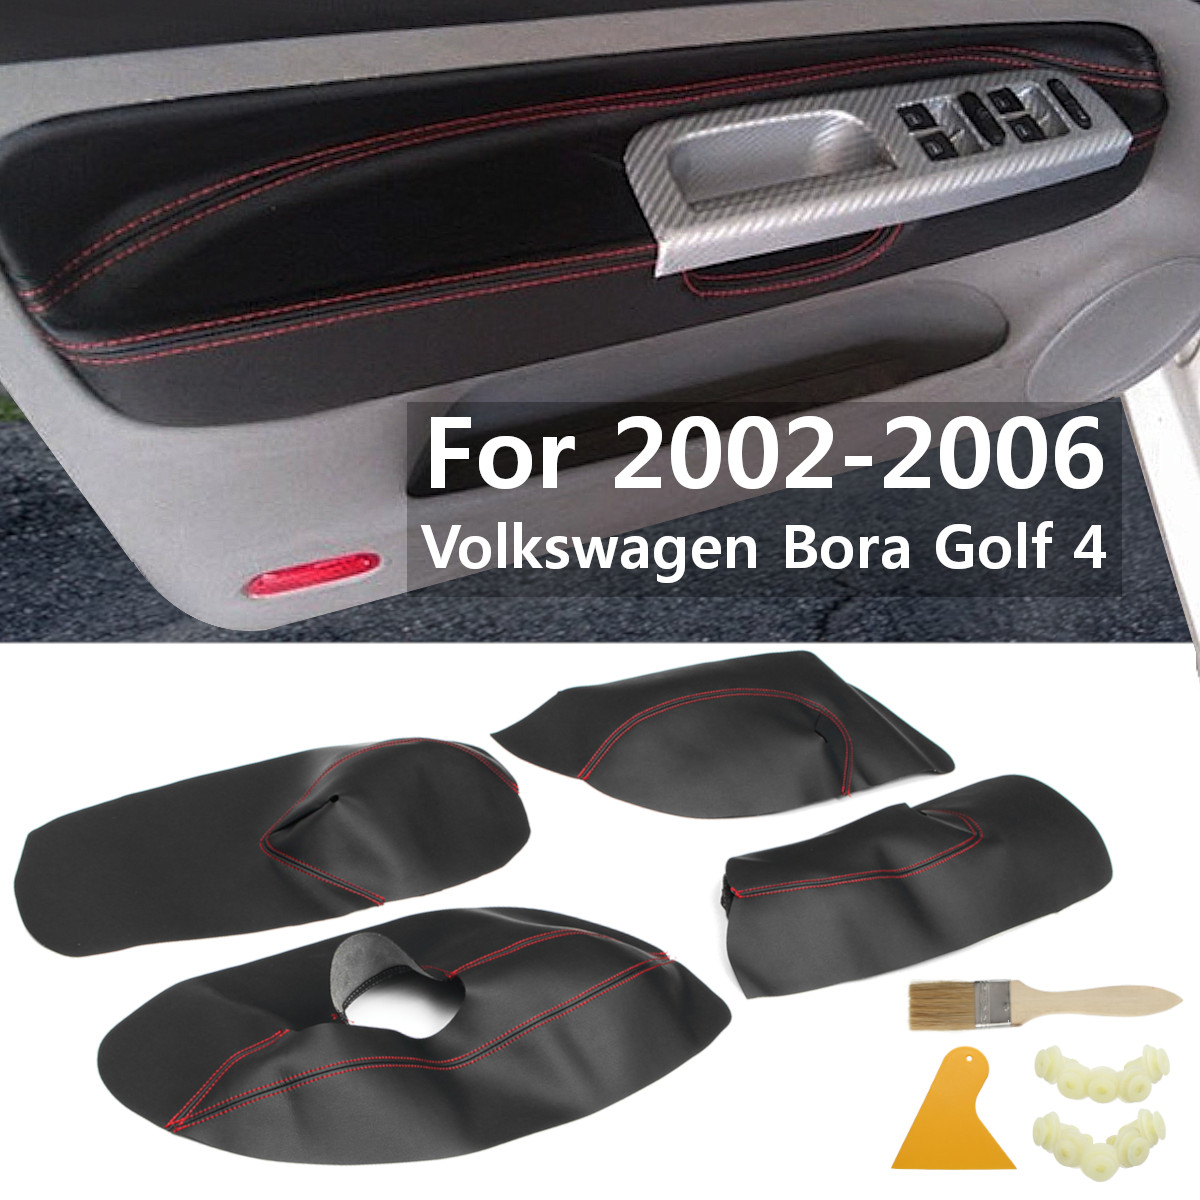 4PCS Car Protective Interior Door Panel Microfibre Leather Cover Accessory For Volkswagen Bora Golf 4 <font><b>2002</b></font> 2003 2004 05 06 image